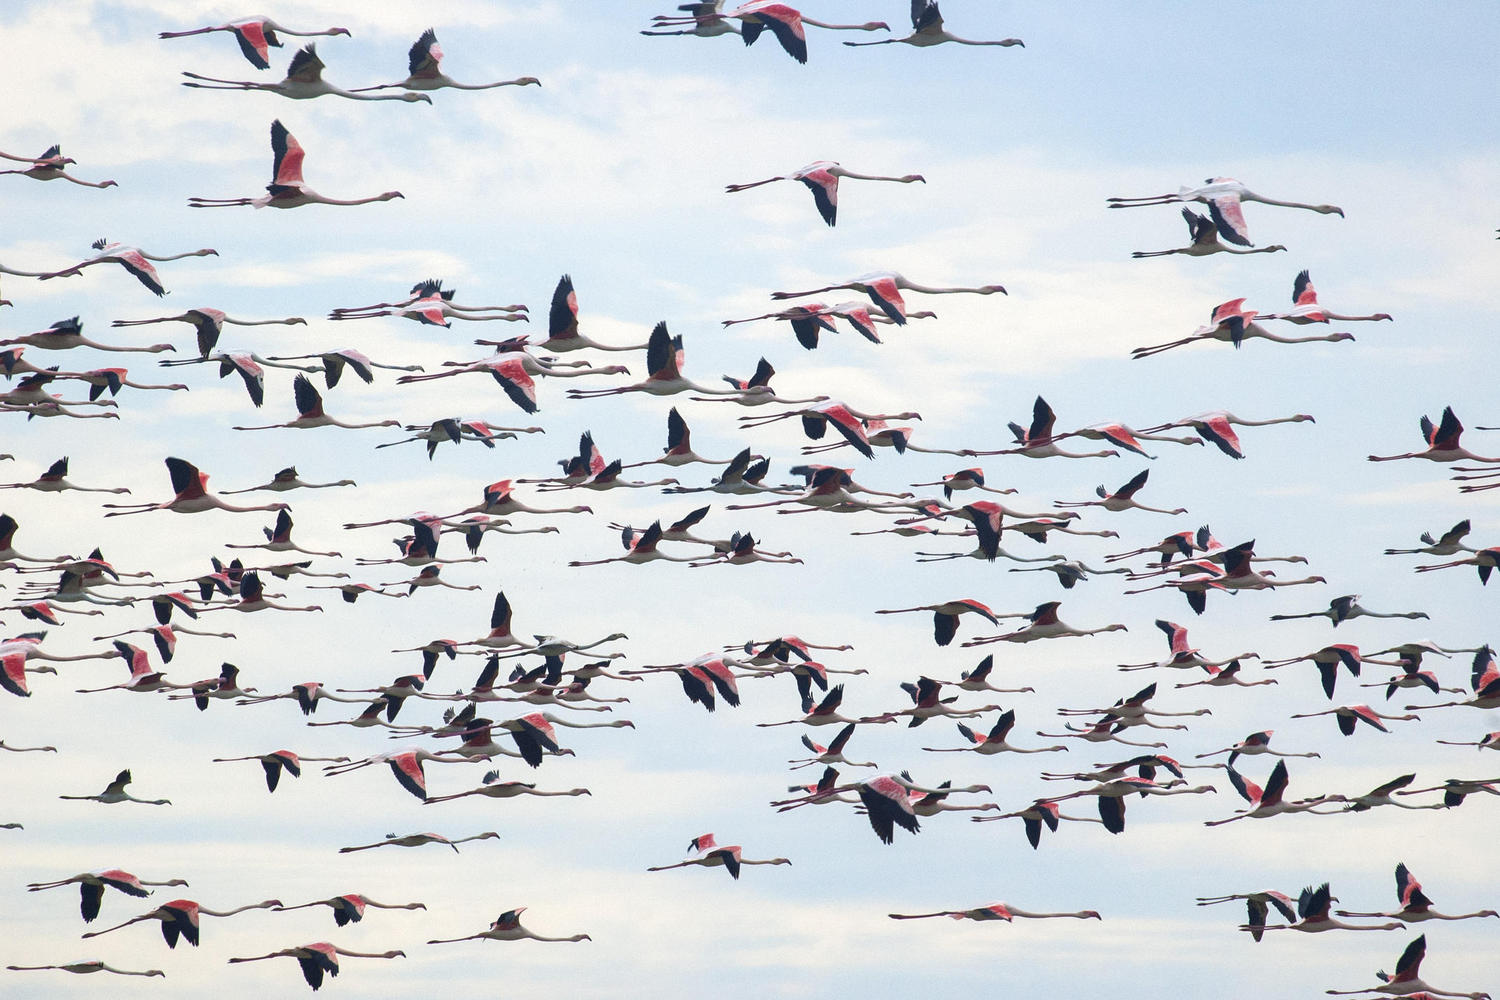 flamingo colony at Doñana